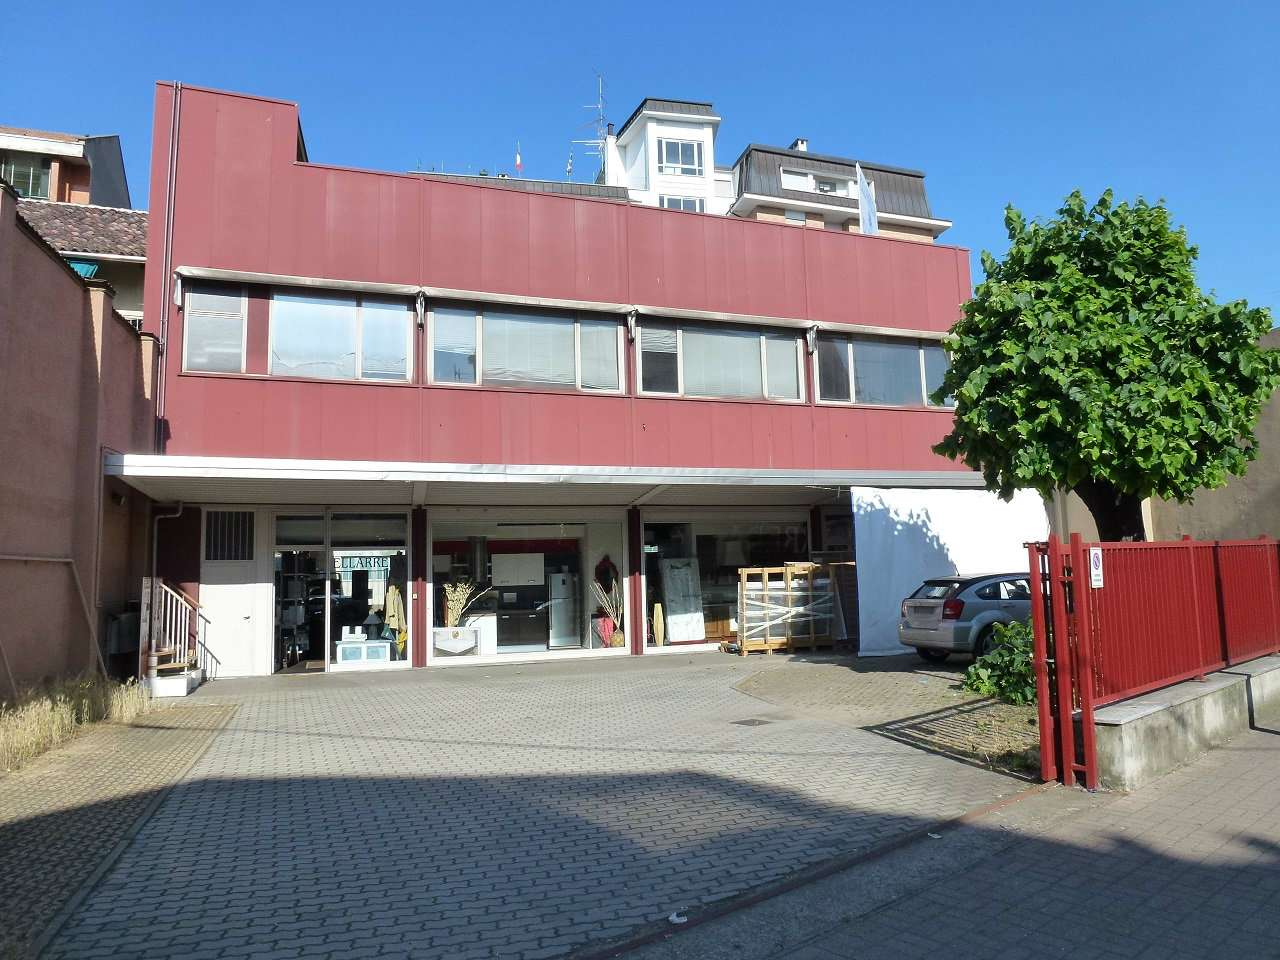 Immobile Commerciale in affitto a Vercelli-http://media.getrix.it/1/6846/2577364665.jpg